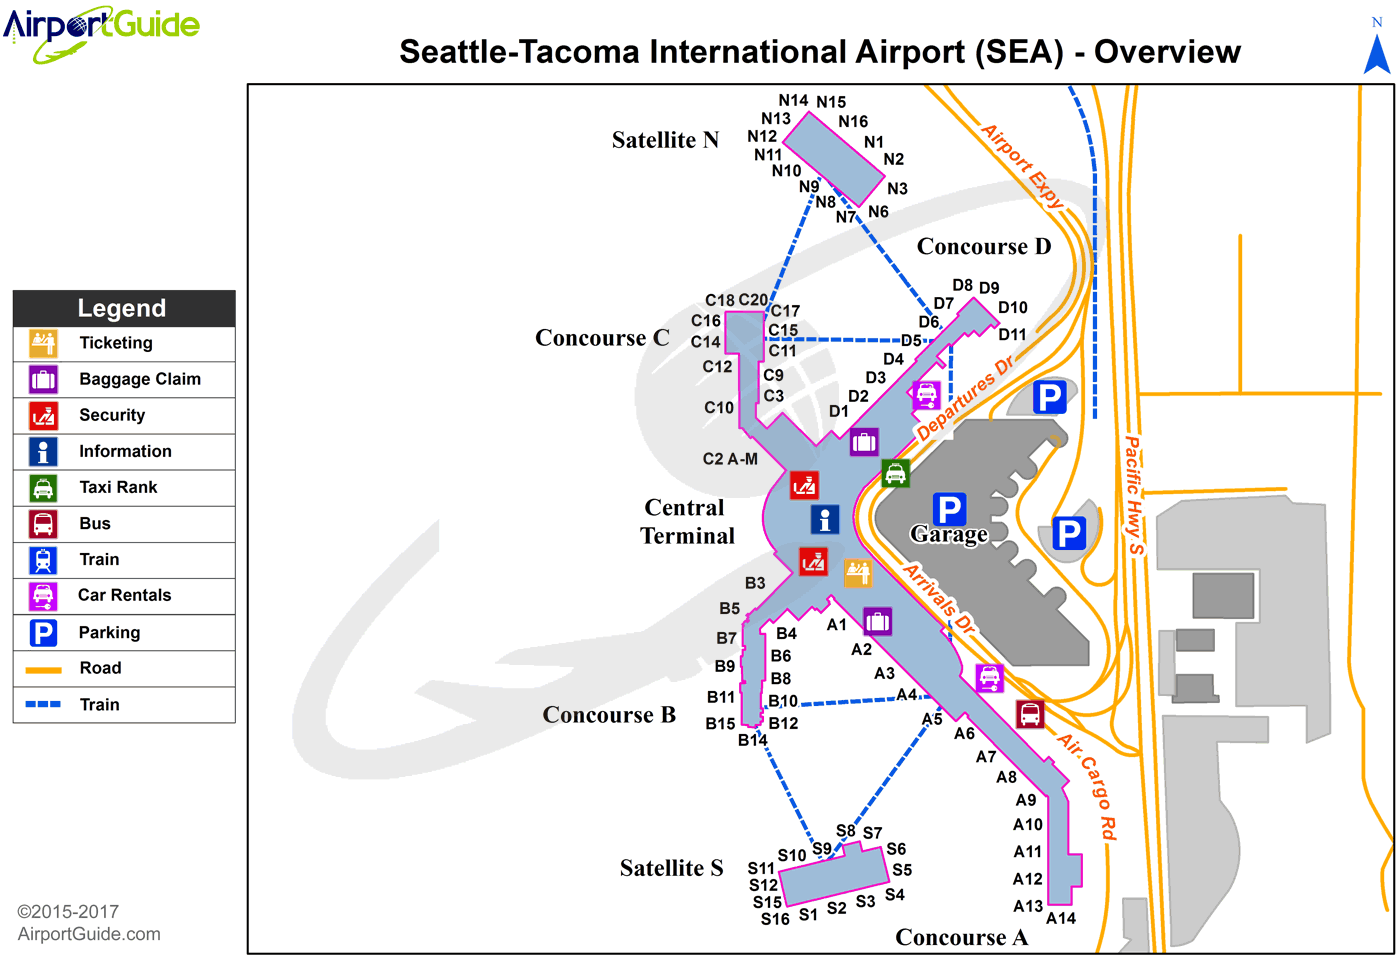 Seattle - Seattle-Tacoma International (SEA) Airport Terminal Map - Overview